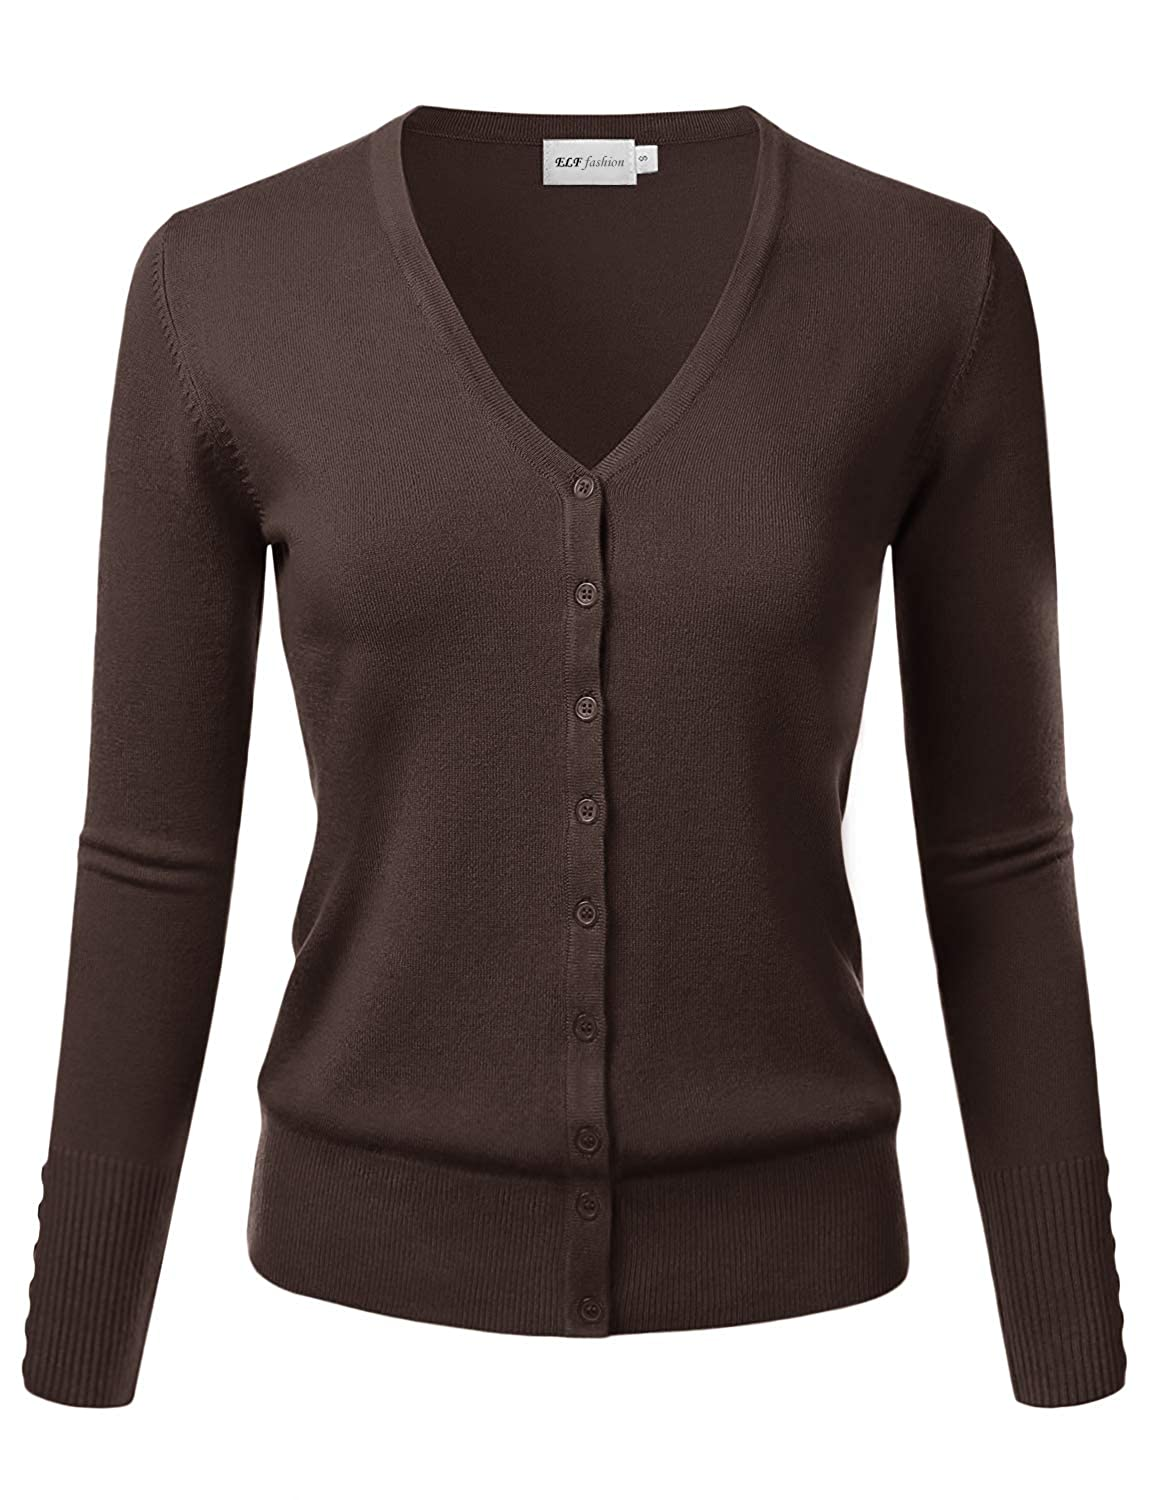 S~3XL Brown S ELF FASHION Womens V-Neck Long Sleeve Button Down Sweater Cardigan Soft Knit